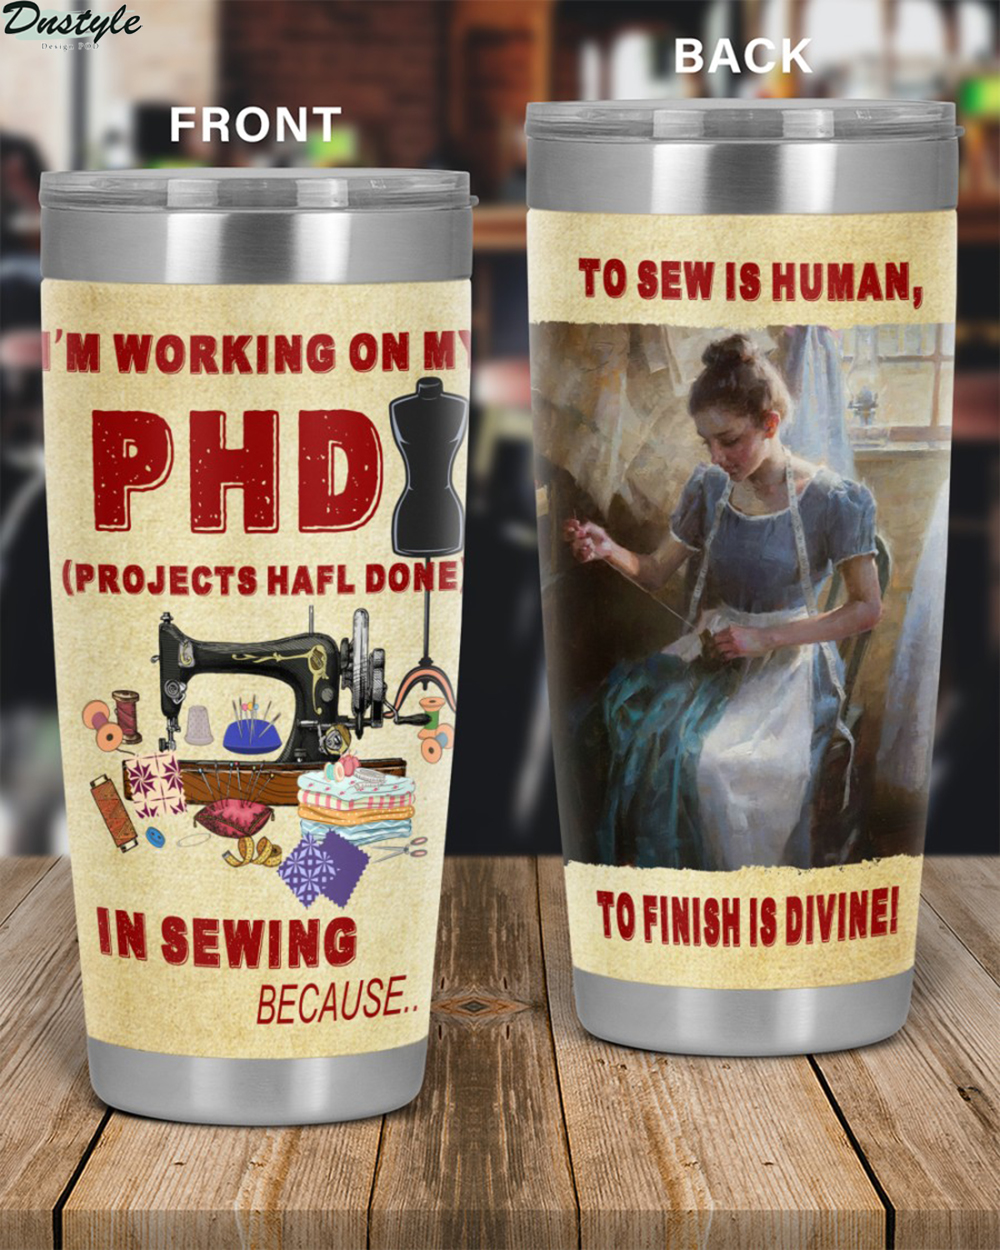 I'm working on my PHD in sewing tumbler 1